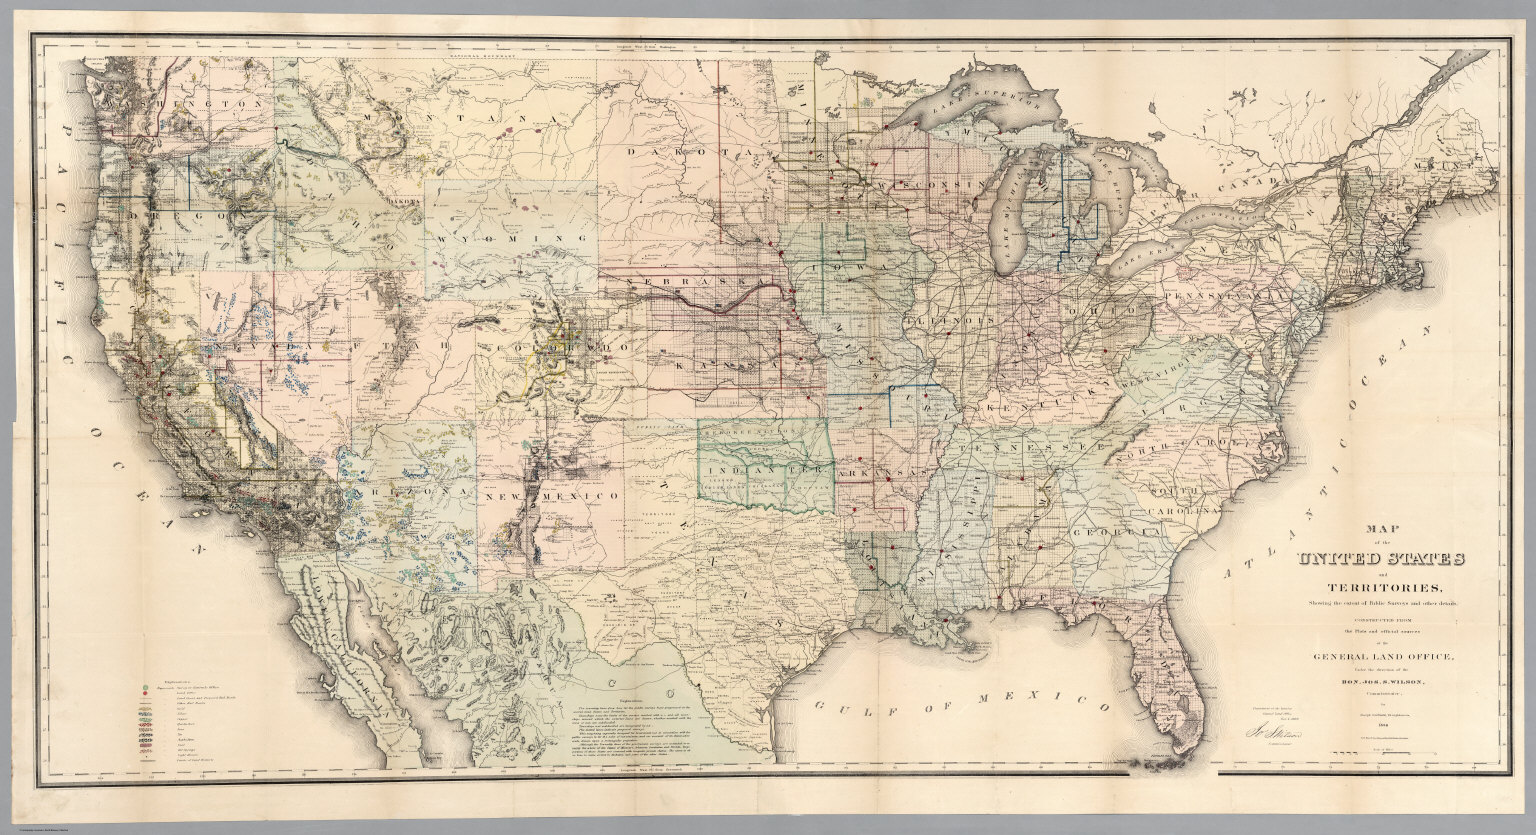 Map Of The United States And Territories 1869